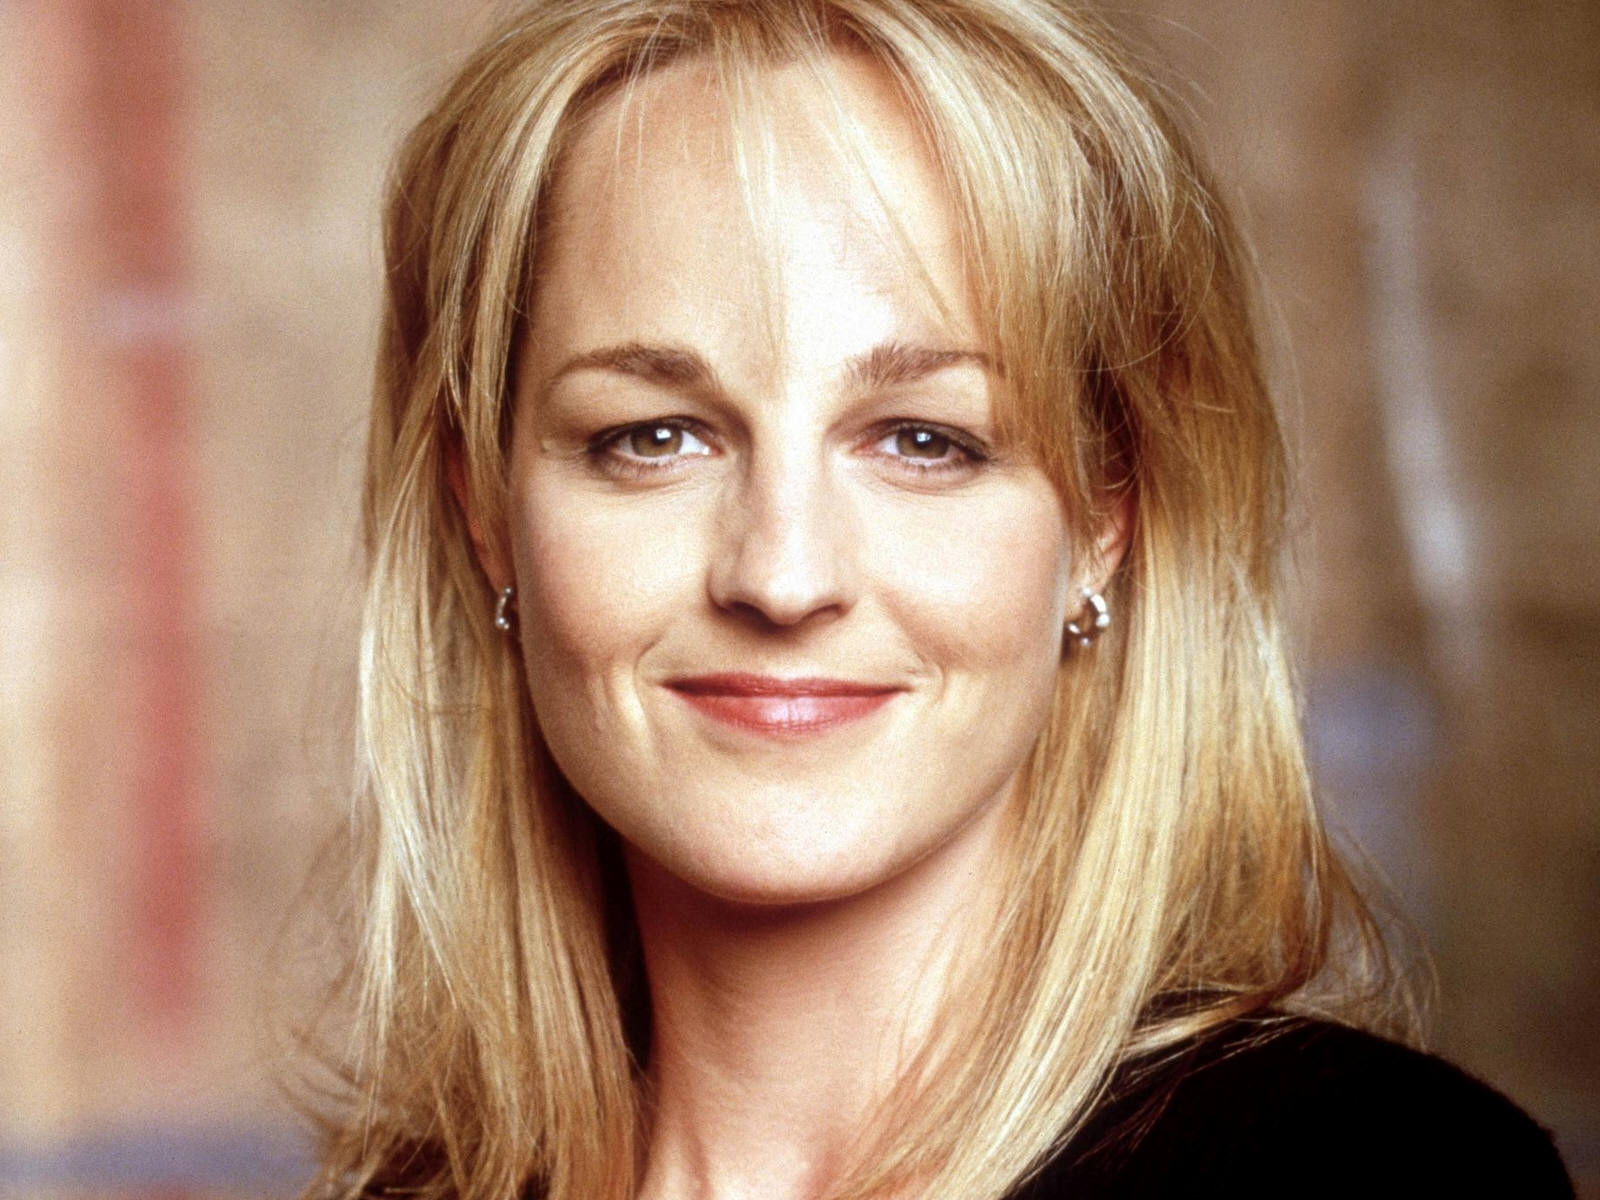 bonnie hunt face wallpaper photos 45